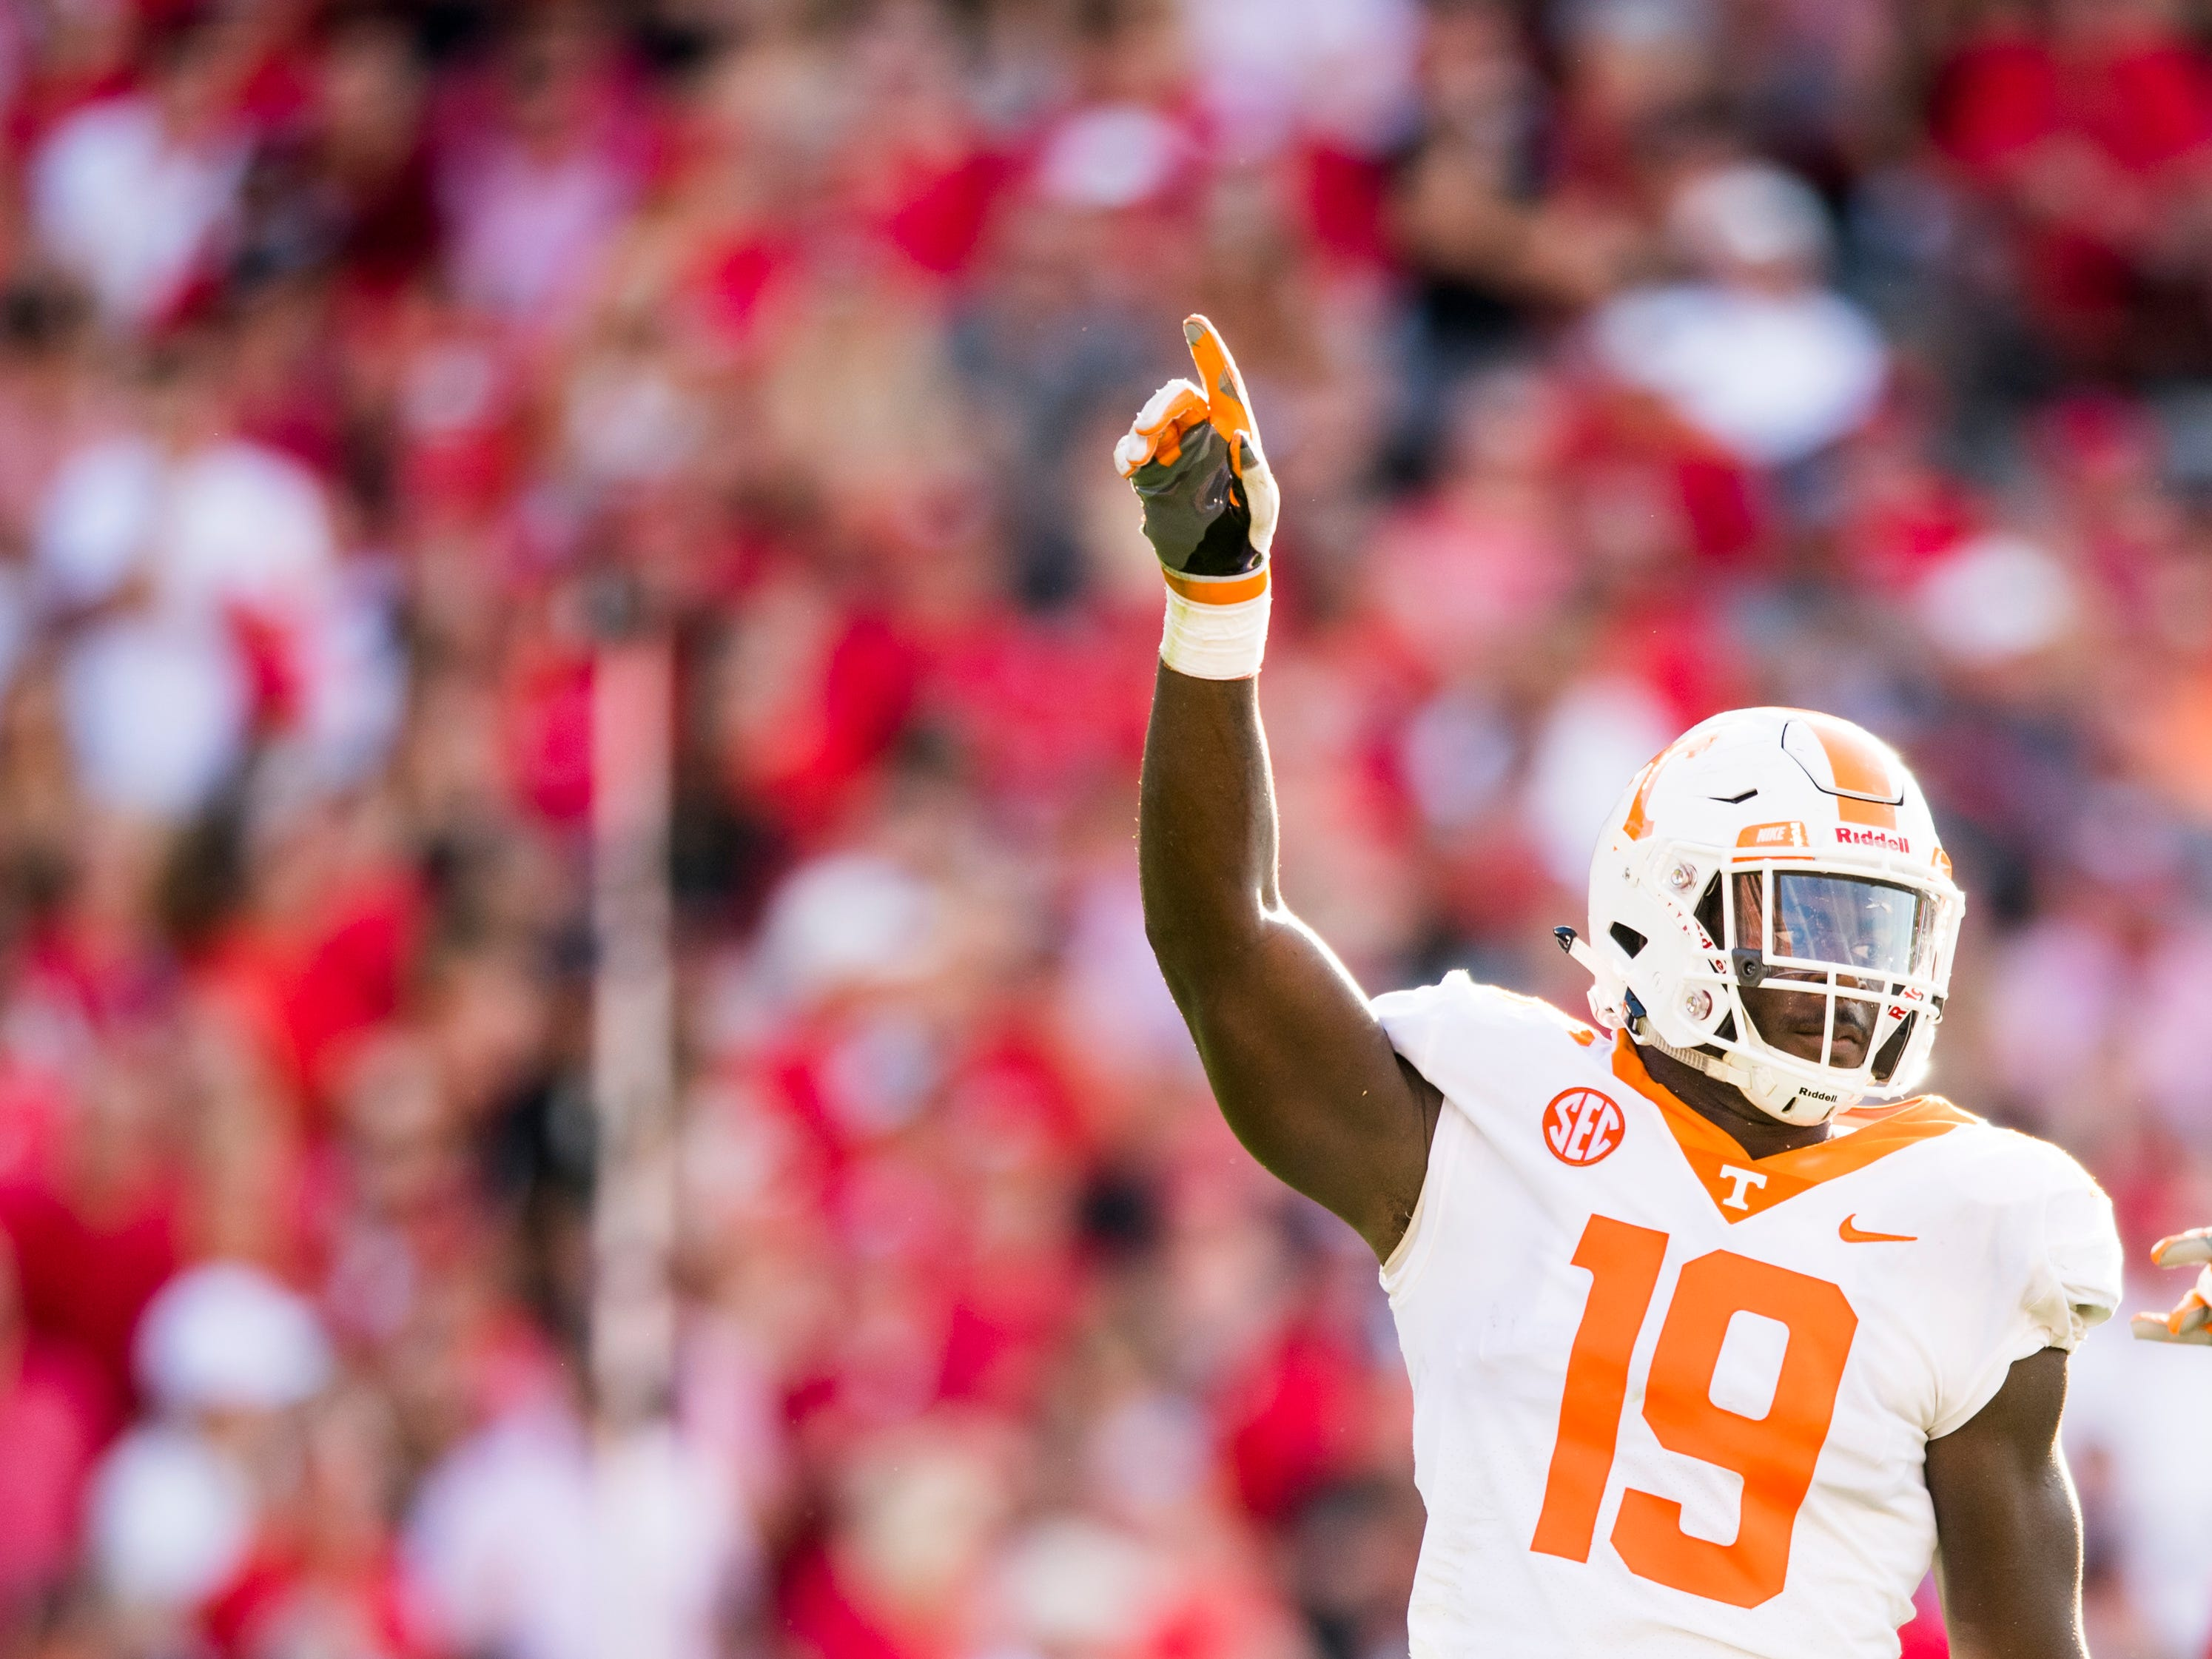 Tennessee linebacker Darrell Taylor (19) celebrates his sack during the Tennessee Volunteers' game against Georgia in Sanford Stadium in Athens, Ga., on Saturday, Sept. 29, 2018.